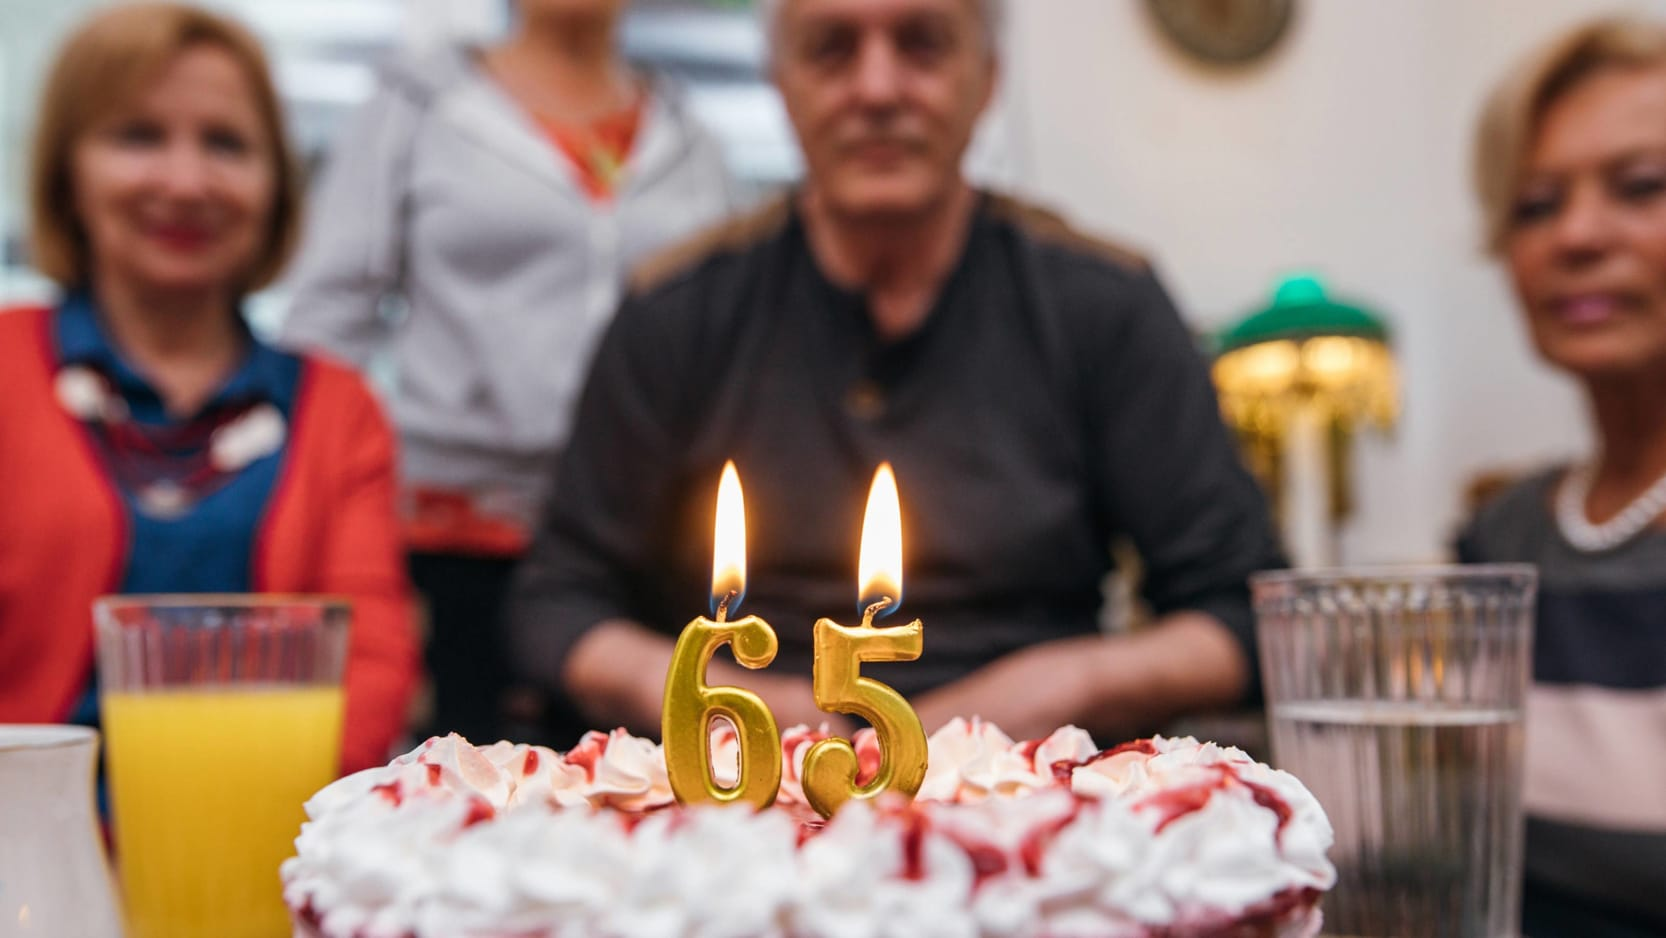 A senior man celebrating his 65th birthday with friends. There is a cake with candles saying 65.